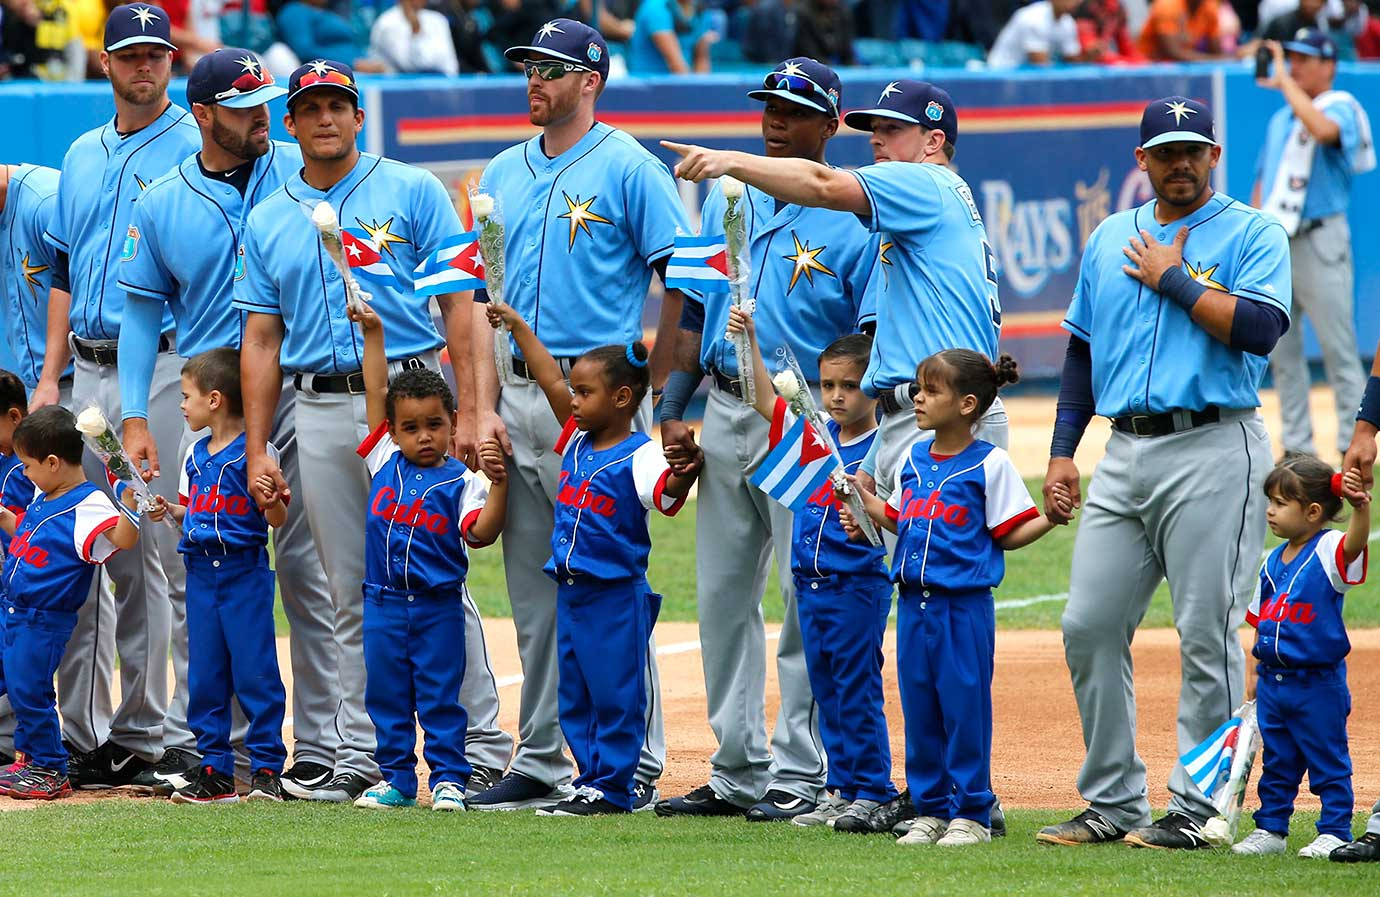 The Tampa Bay Rays with Cuban children before the game at the Estadio Latinoamericano in Havana, Cuba.